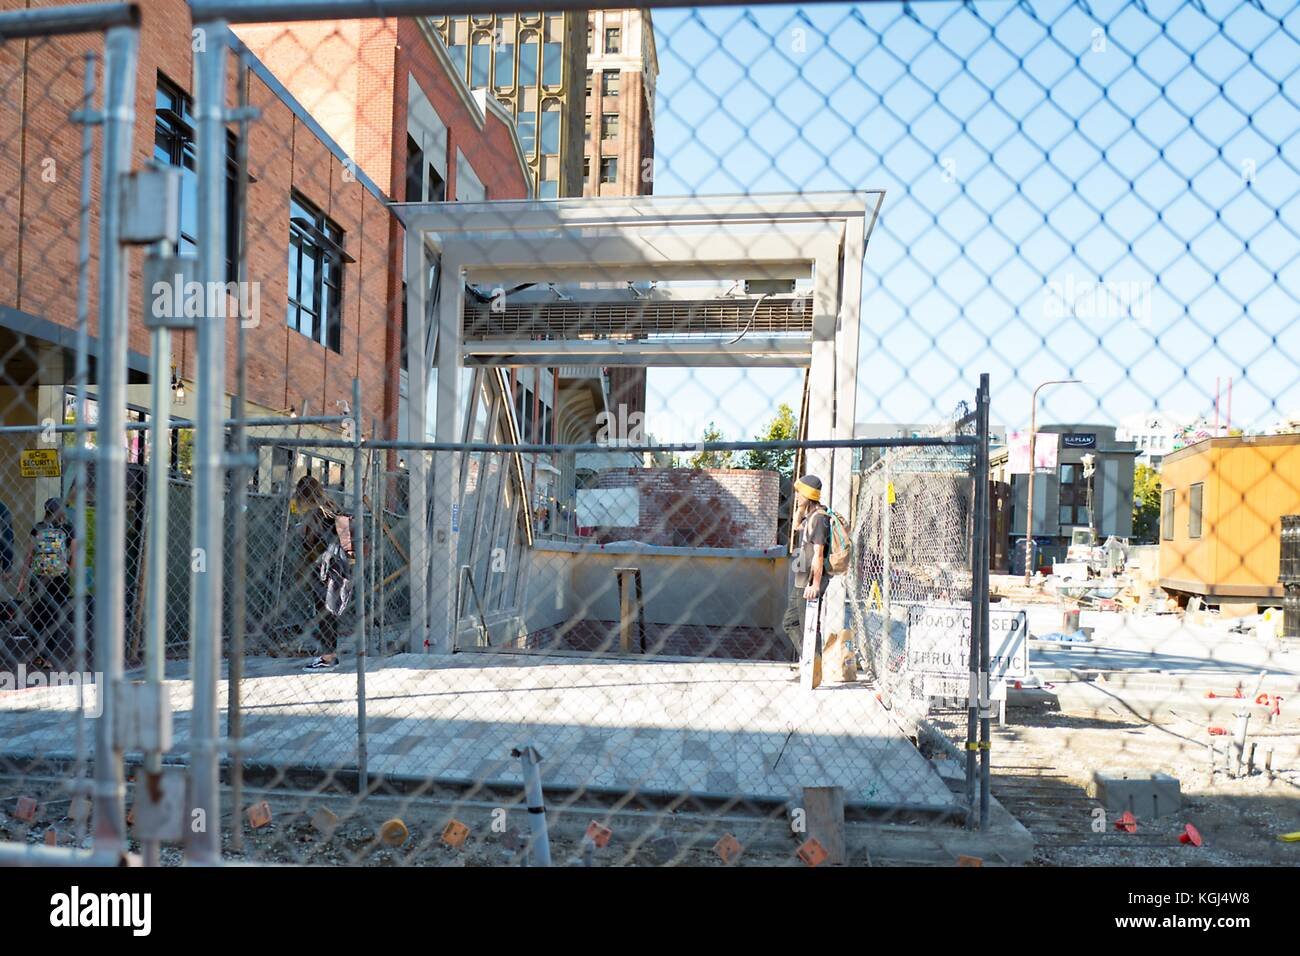 View through multiple chainlink construction fences to the entrance of the Bay Area Rapid Transit (BART) station - Stock Image